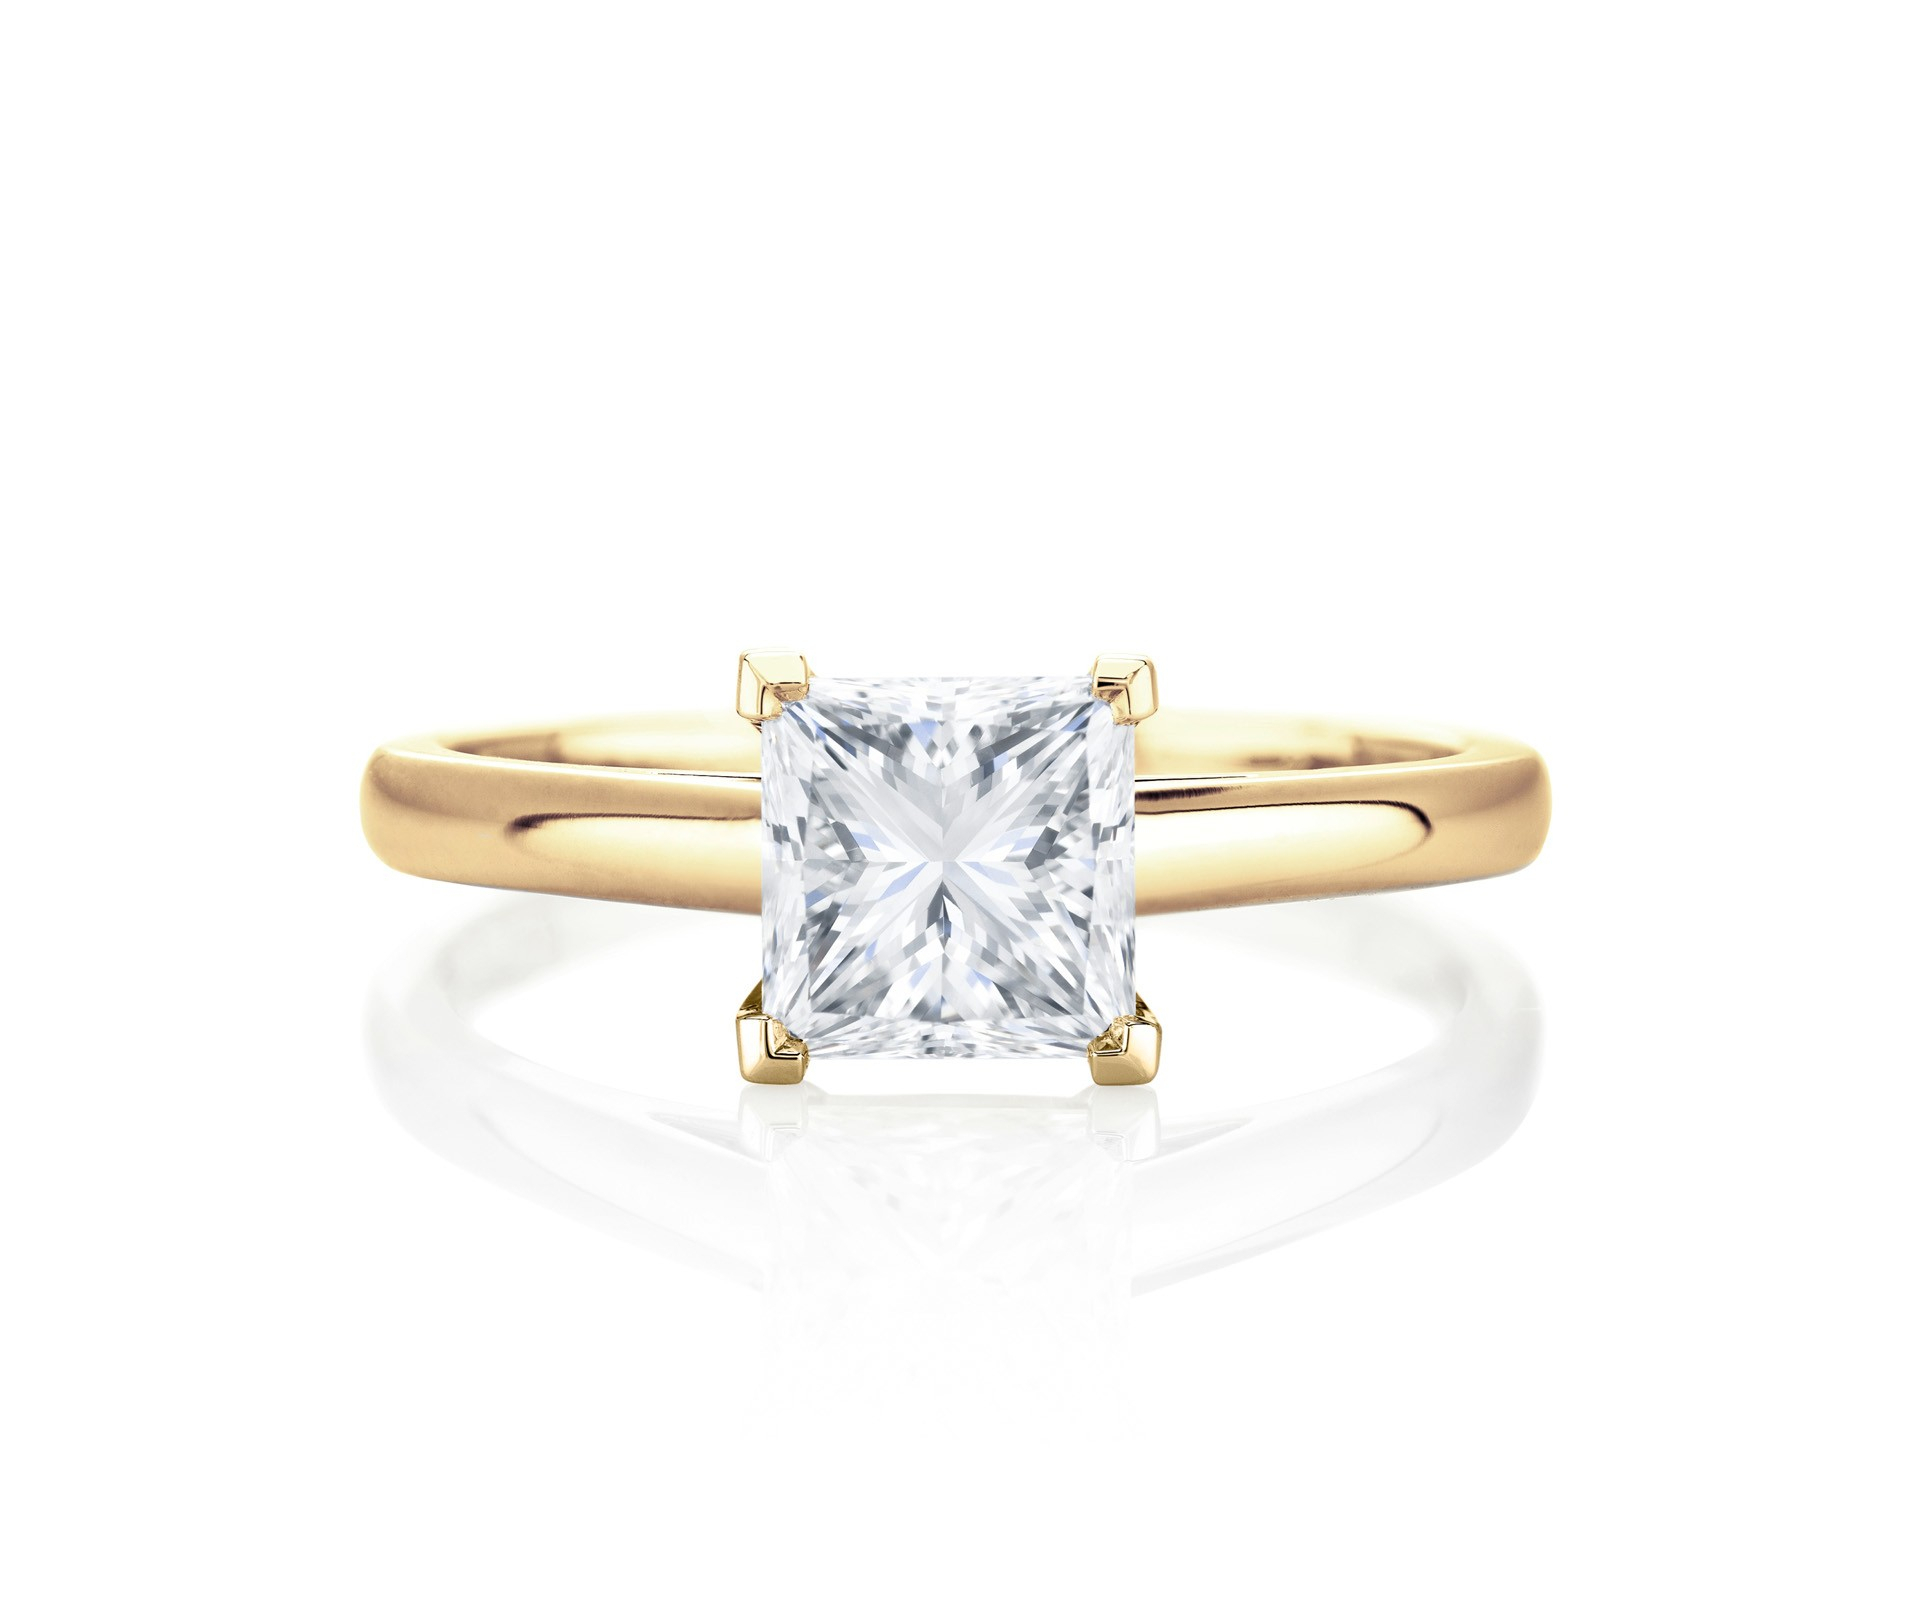 Princess Cut Diamond Engagement Rings | De Beers In Most Recent Princess Cut Single Diamond Wedding Bands In Yellow Gold (View 8 of 25)